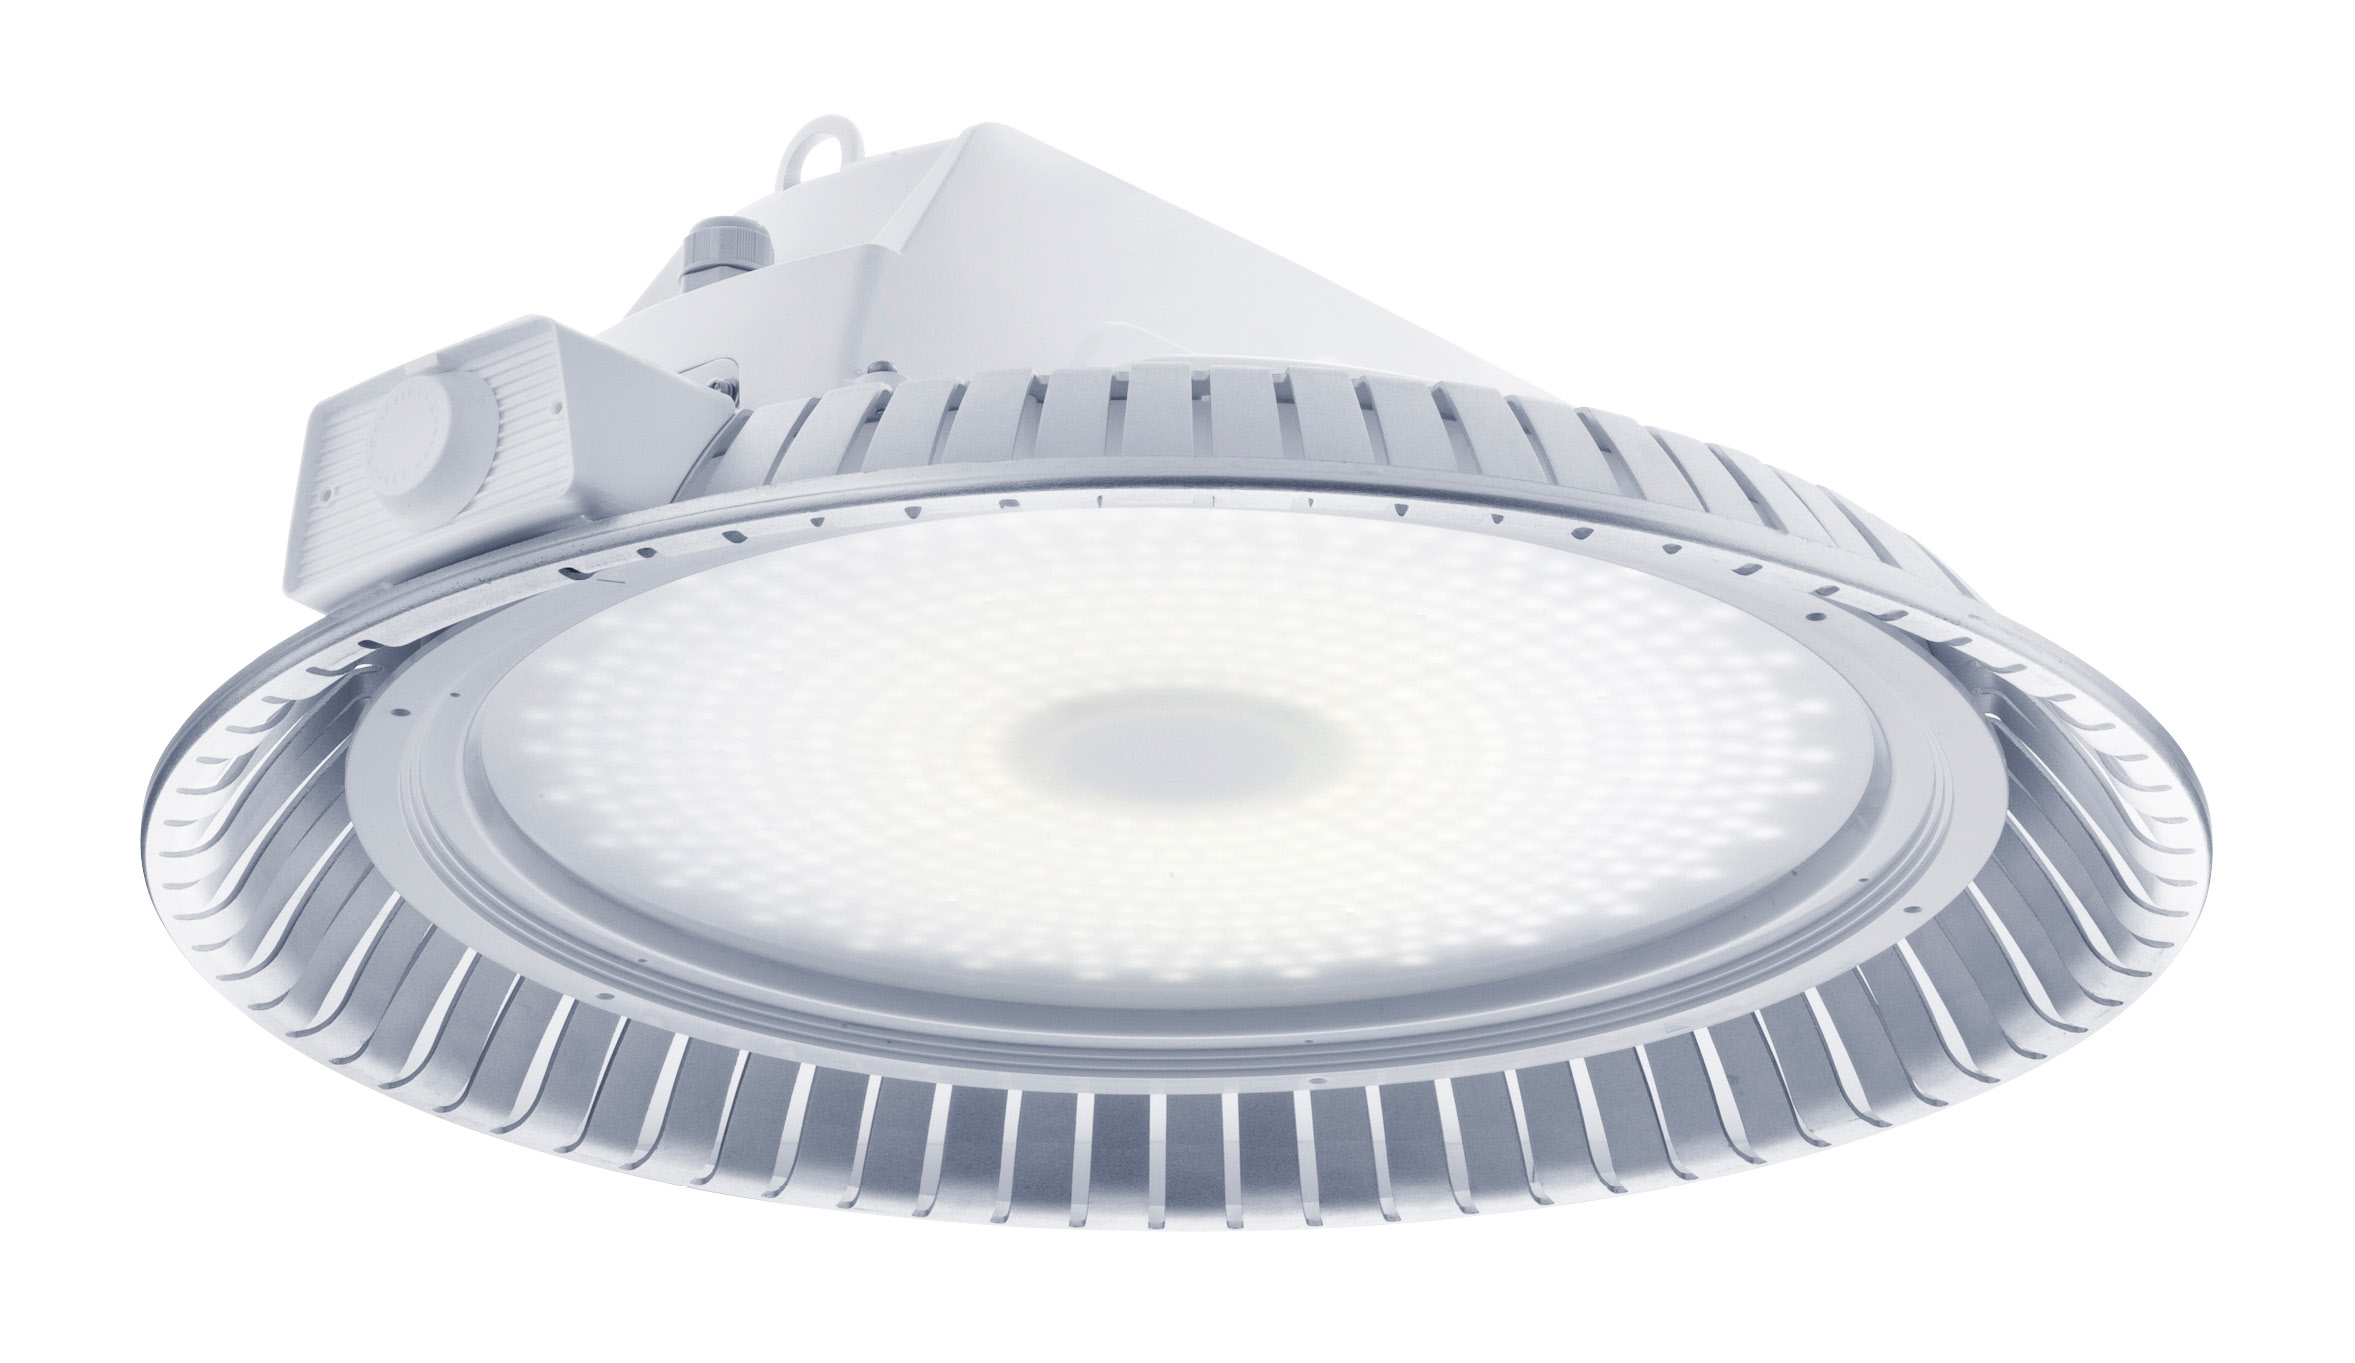 apl n products lighting hbl bay led manufacturers light m high lightw